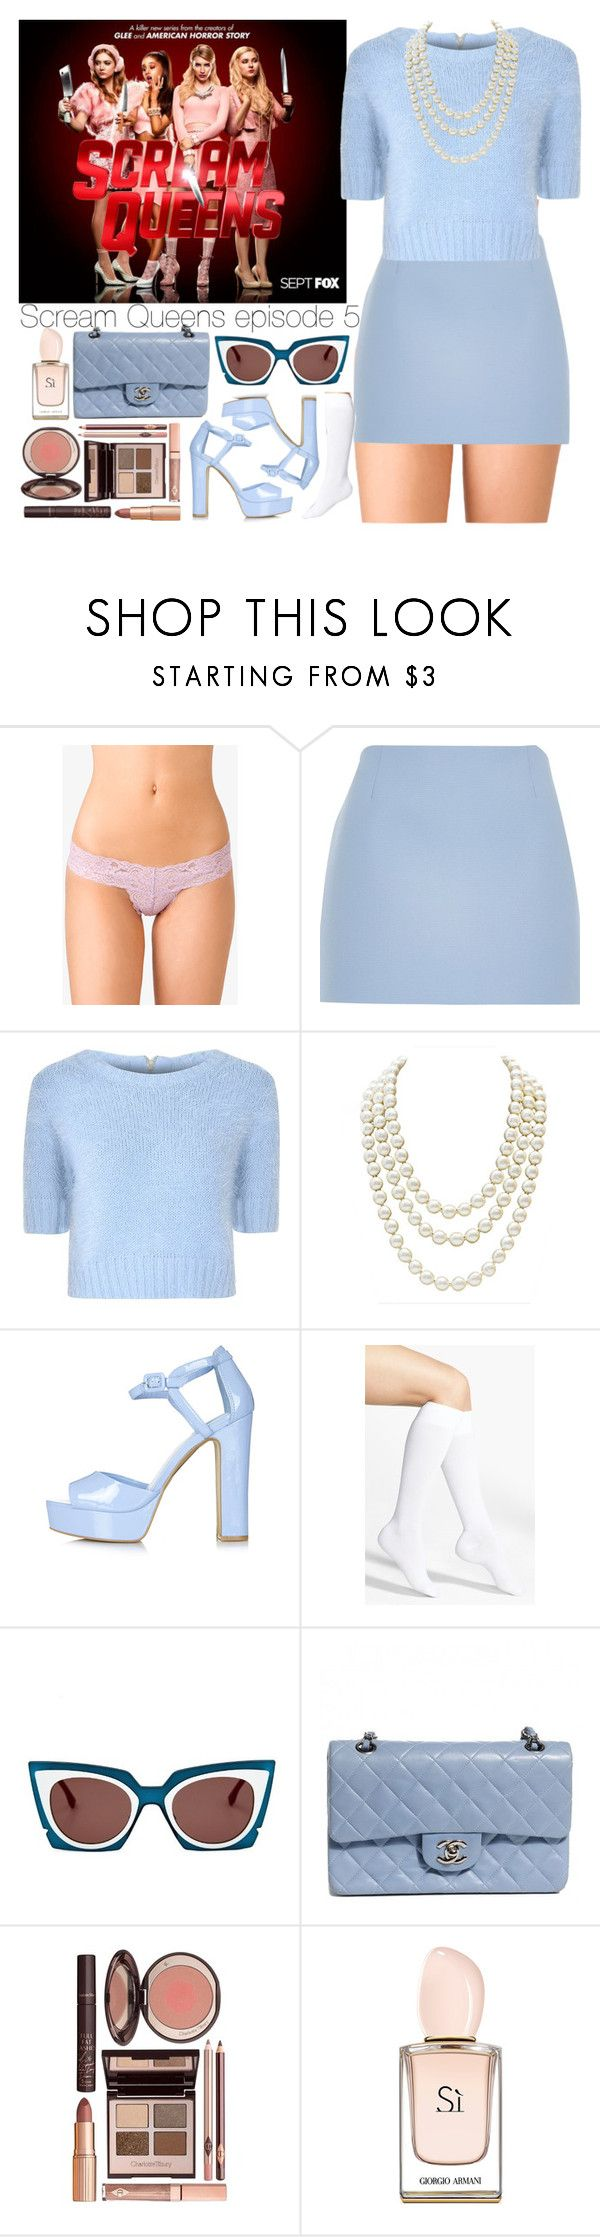 """Scream Queens episode 5."" by outfitsbynina9 ❤ liked on Polyvore featuring Forever 21, River Island, Glamorous, Chanel, Topshop, Nordstrom, Fendi and Charlotte Tilbury"